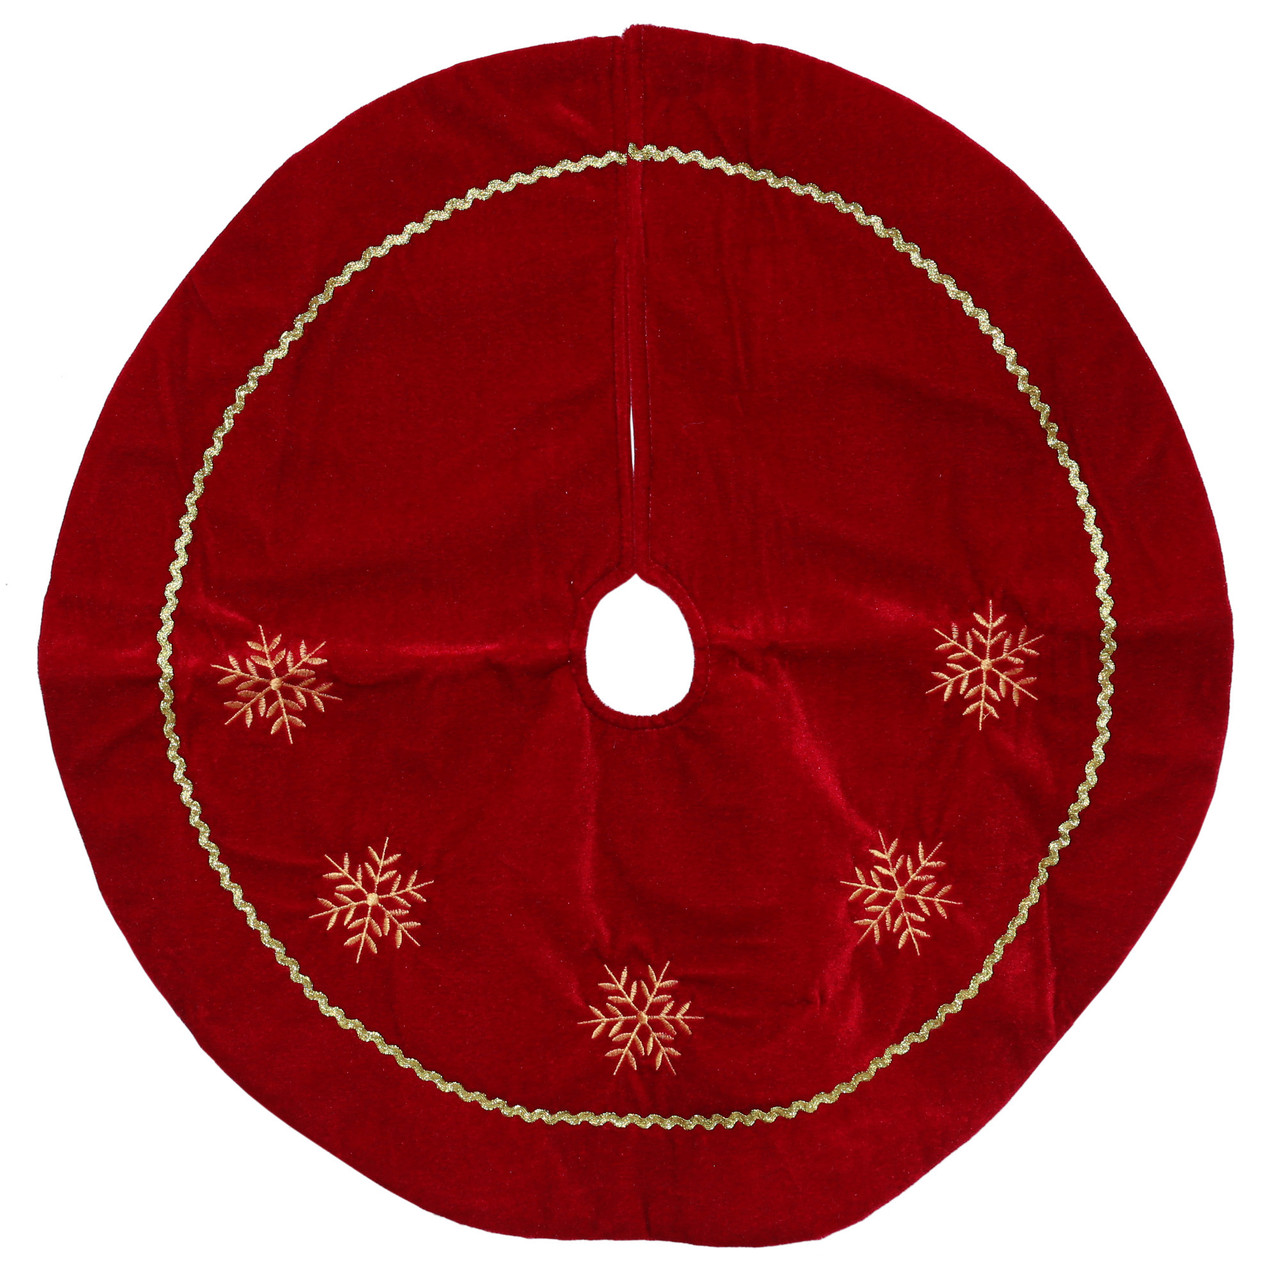 24 Red Velvety Christmas Tree Skirt With Gold Embroidered Snowflakes 32634887